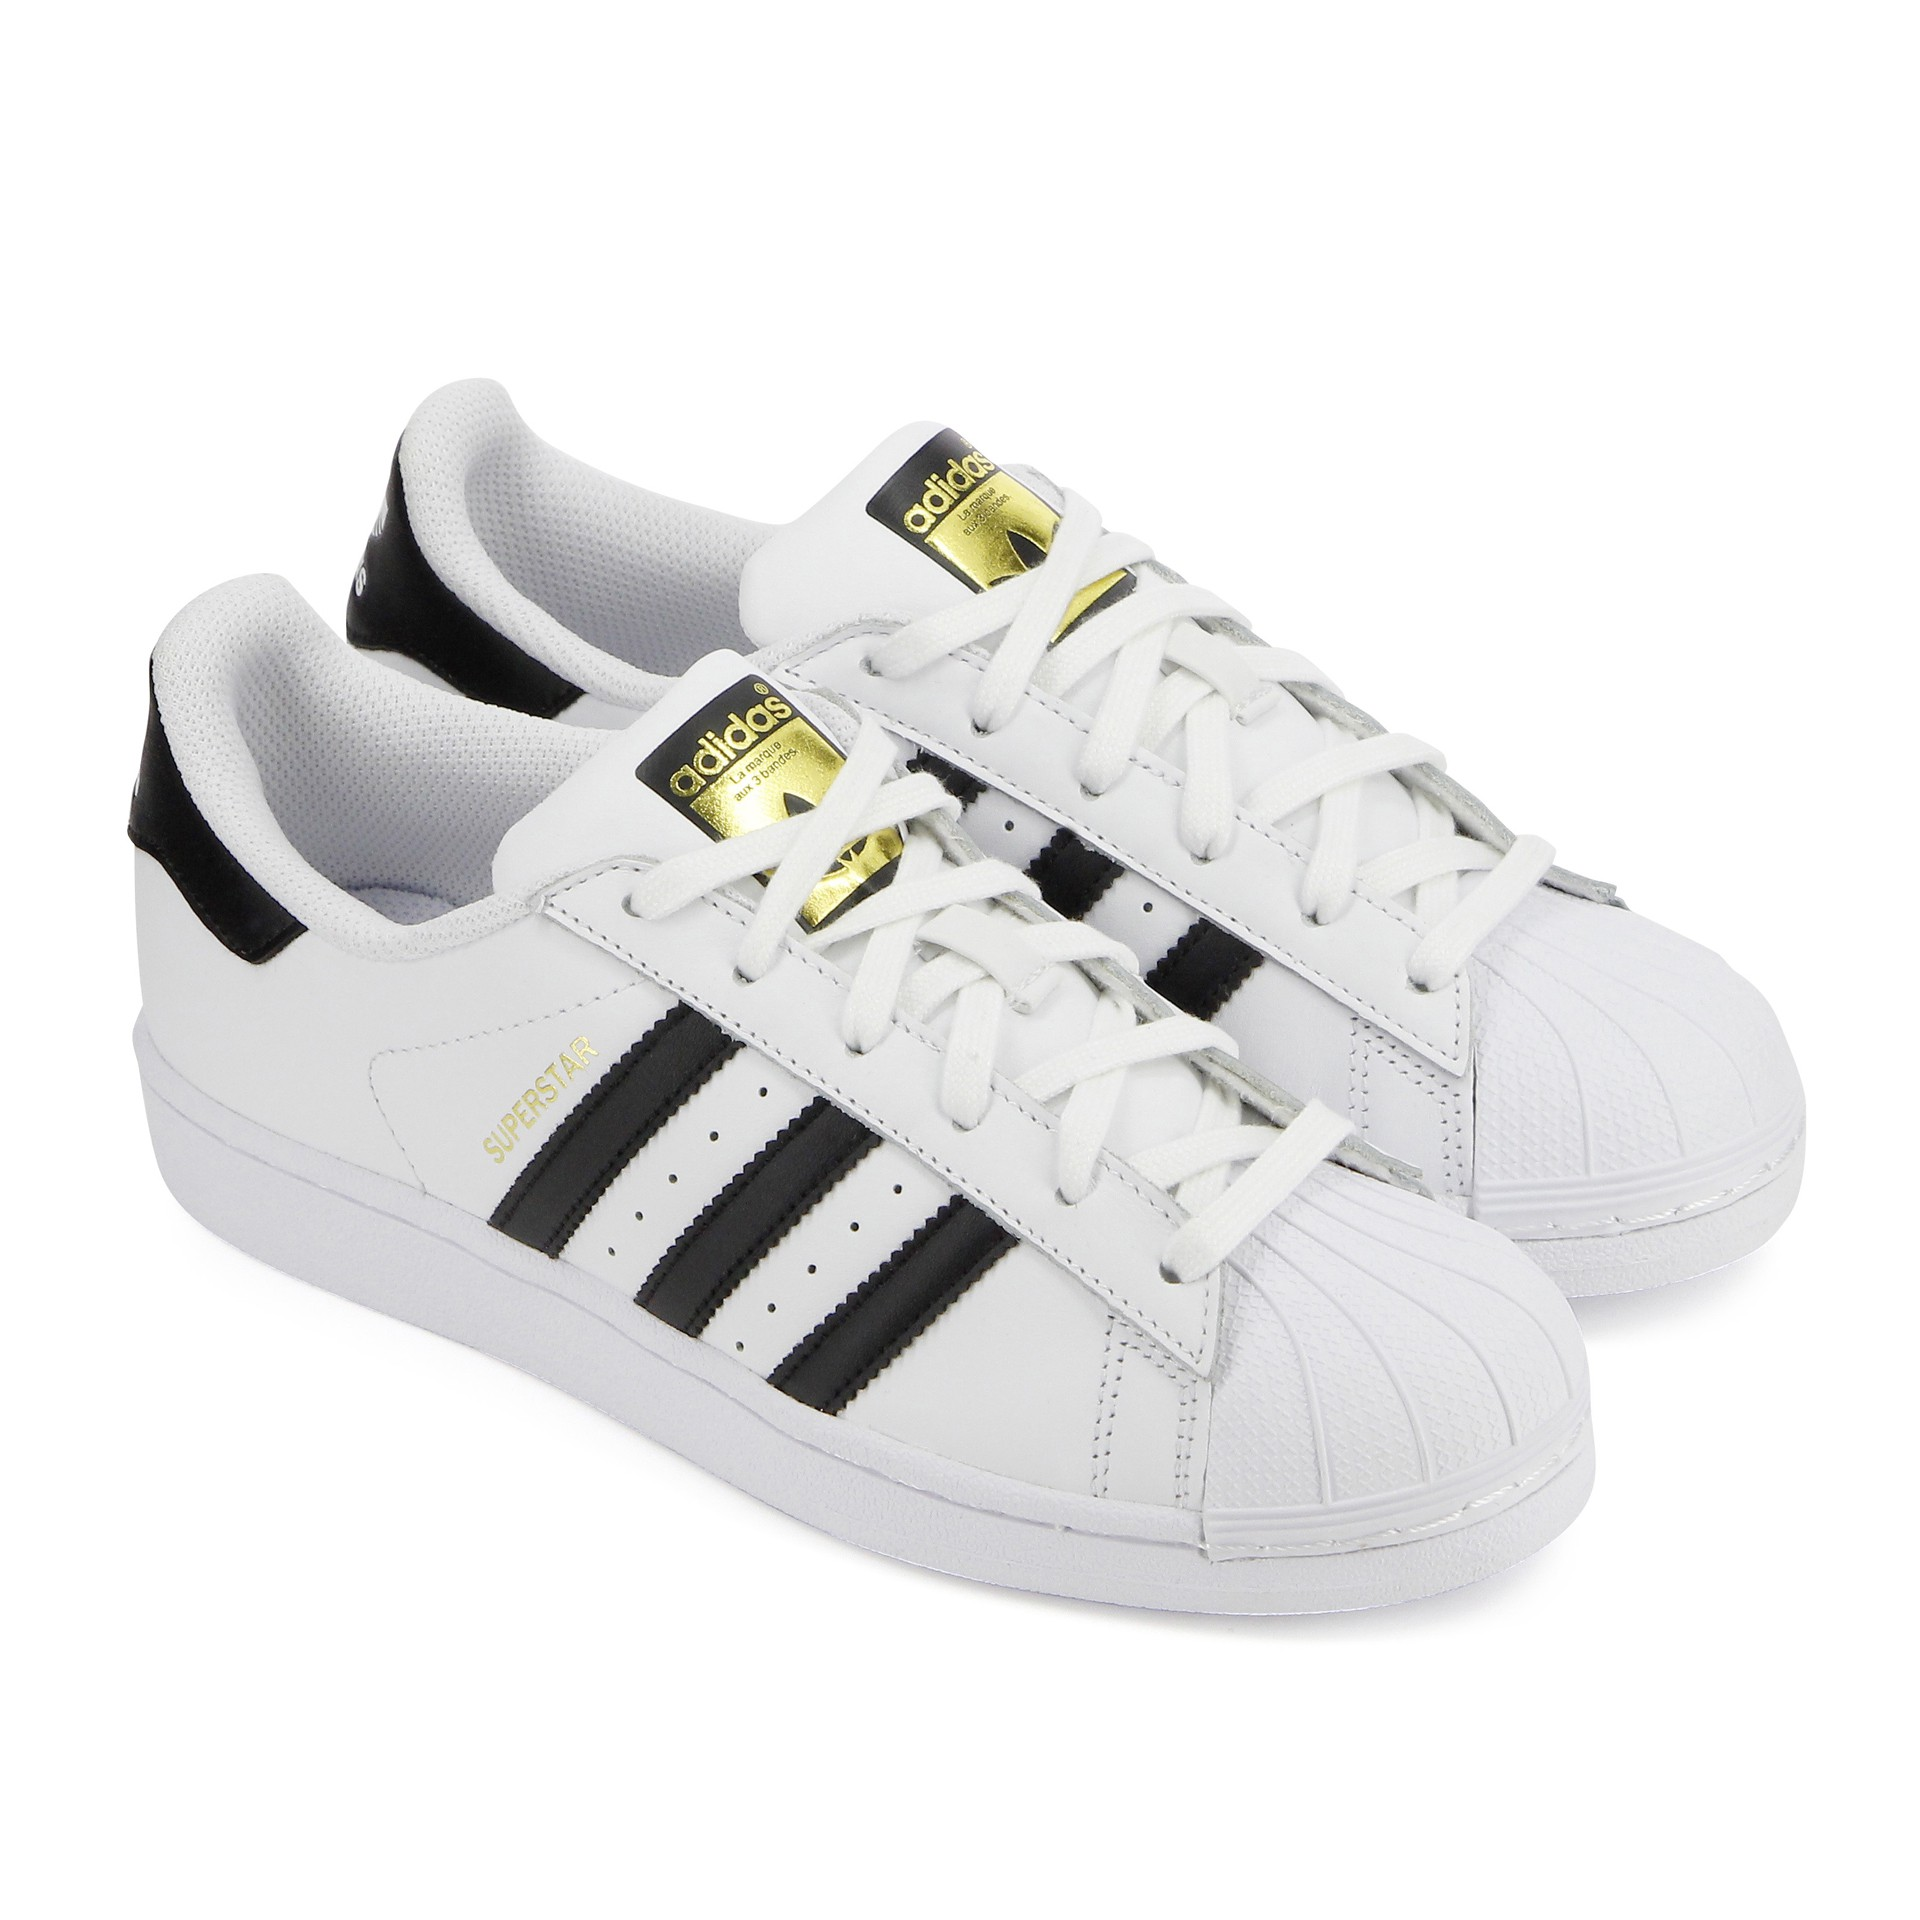 adidas superstar femme taille - www.allow-project.eu fa82ae75dadc